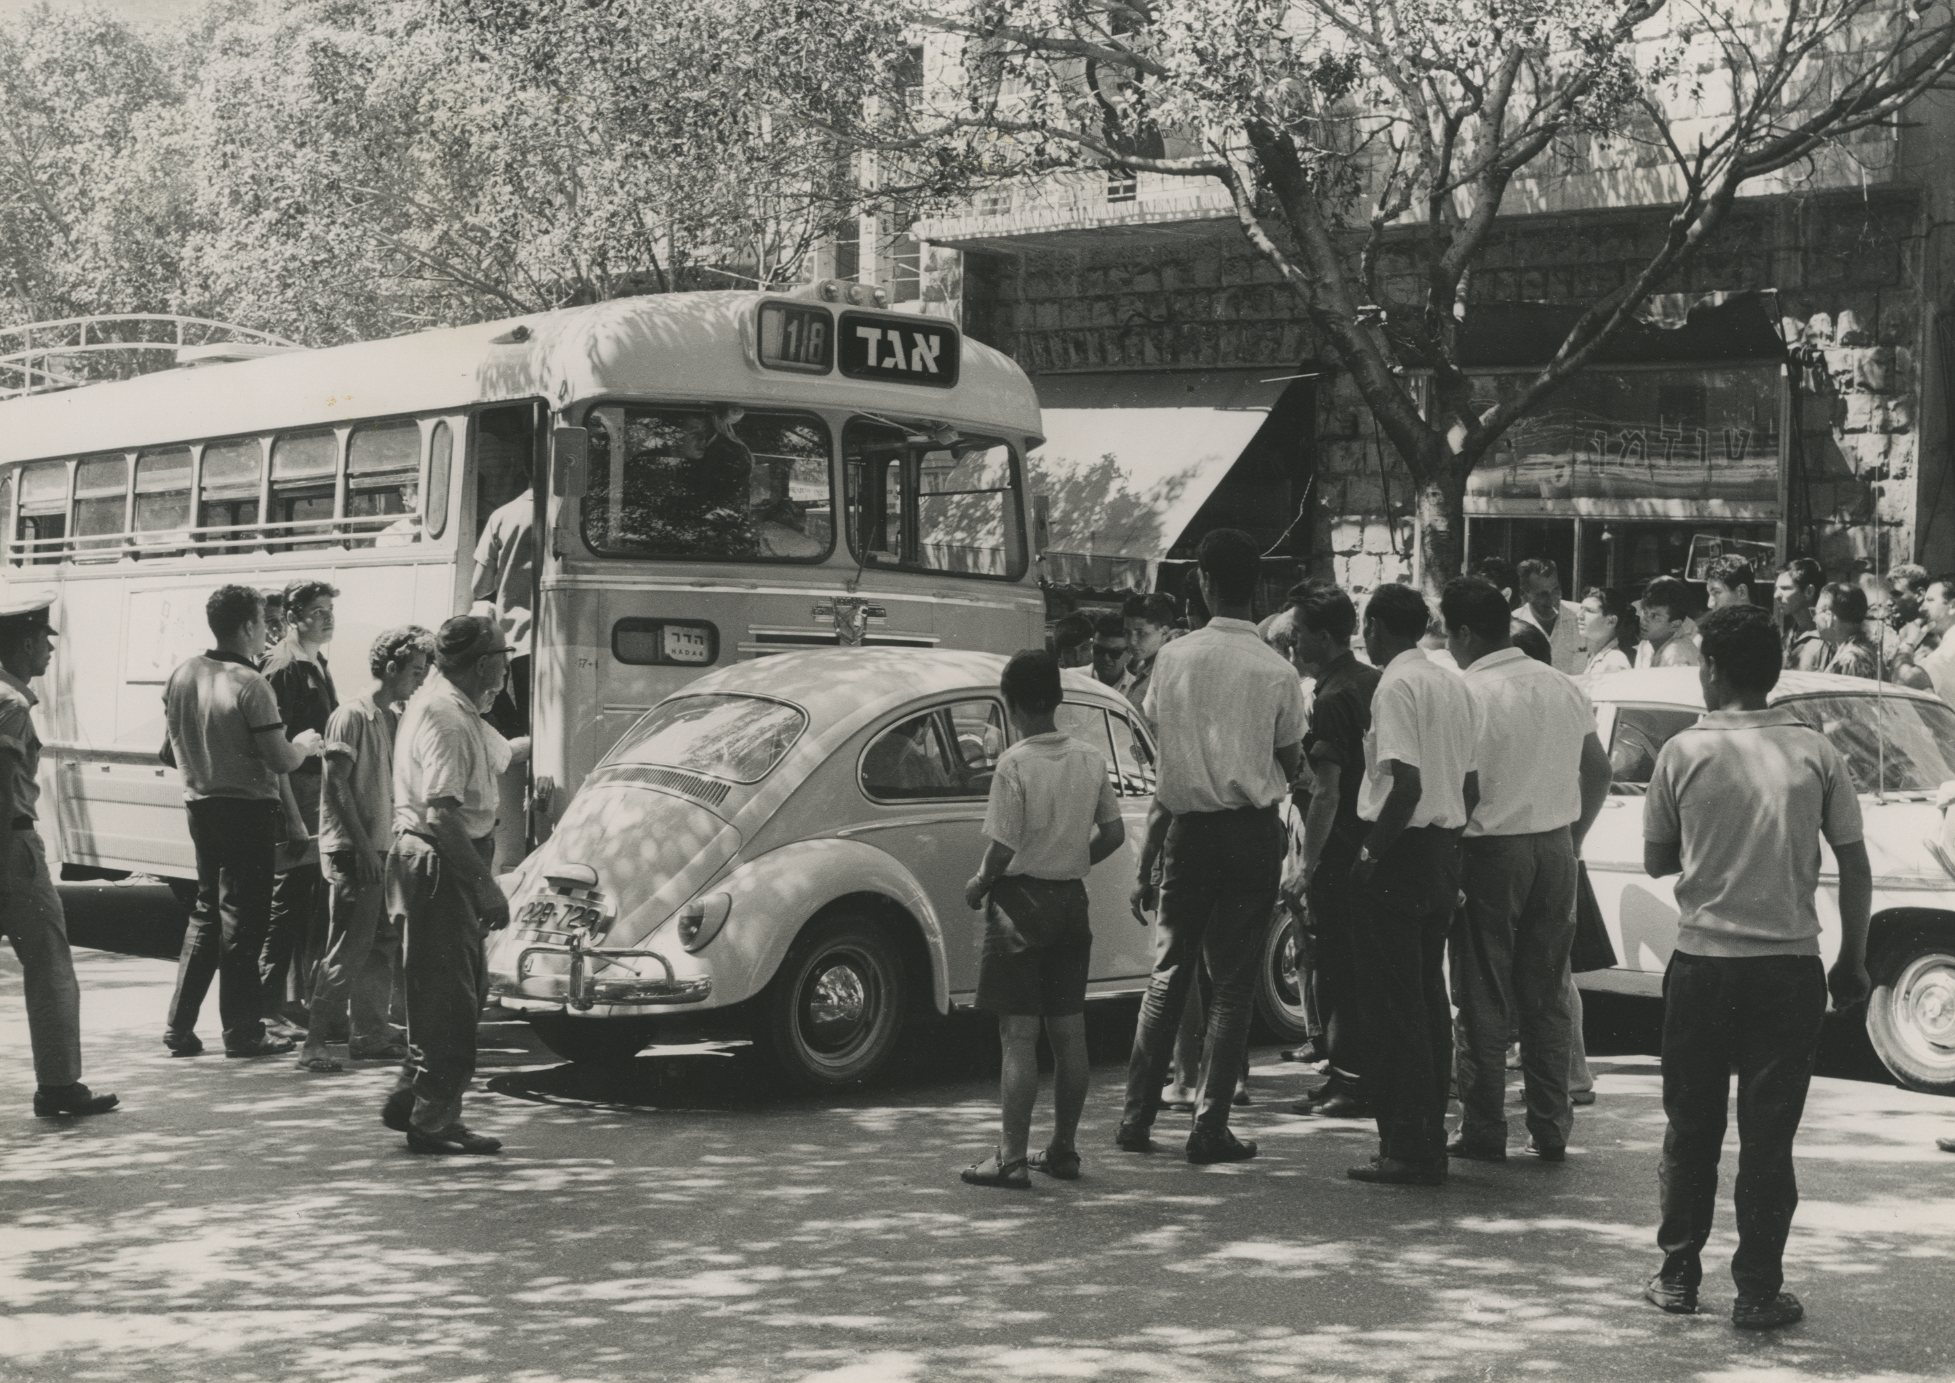 Car accident involving a bus and a Volkswagen on Herzl St , Haifa